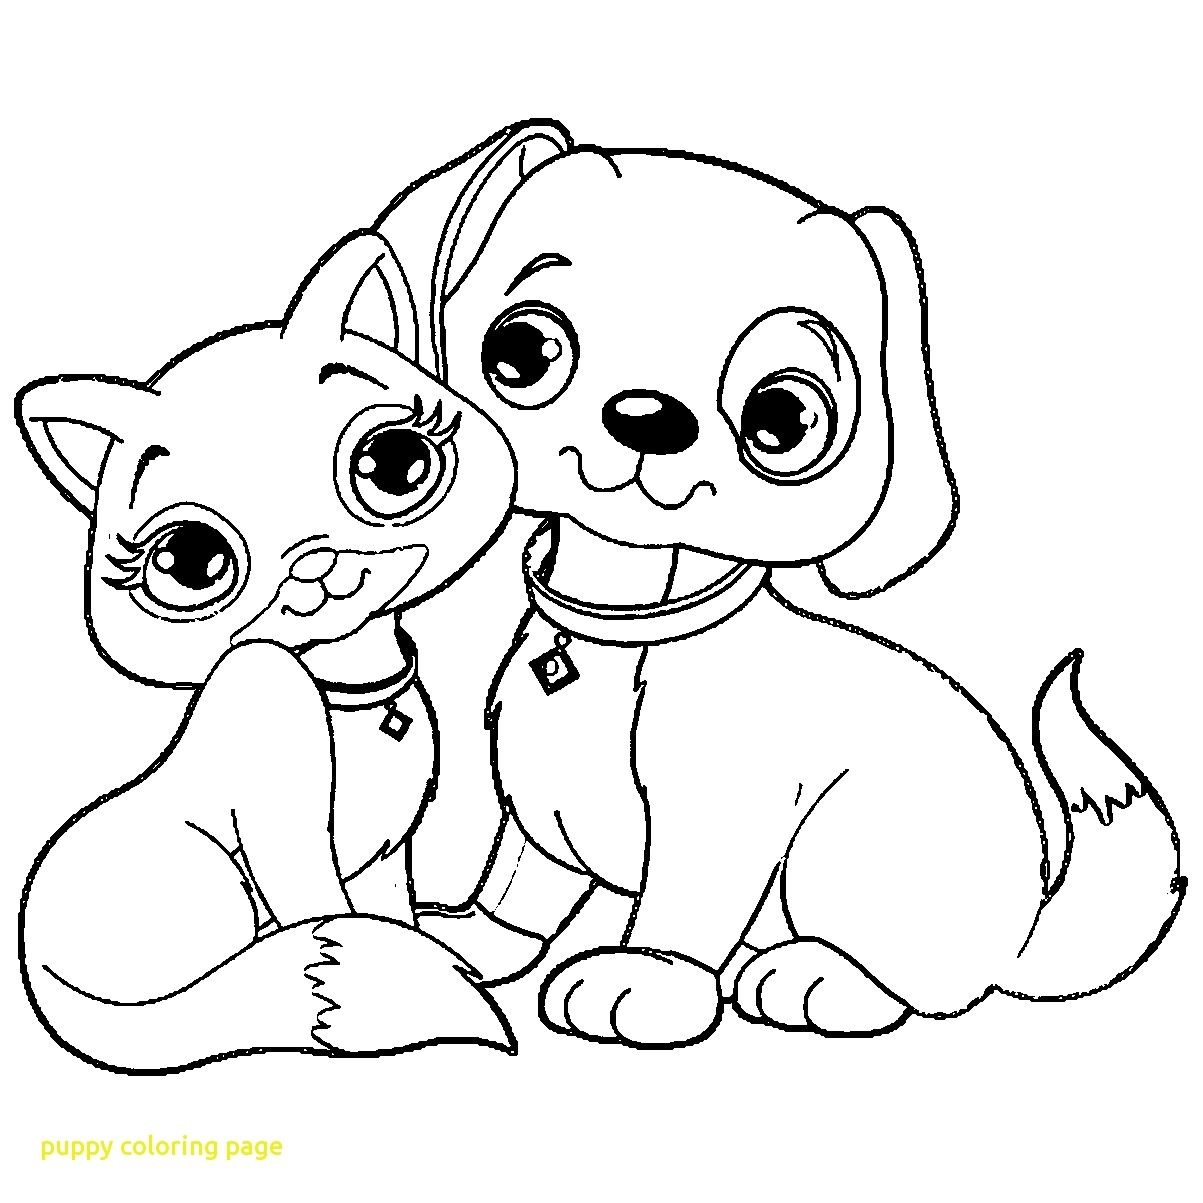 10+ National Puppy Day Coloring Pages for Kids and